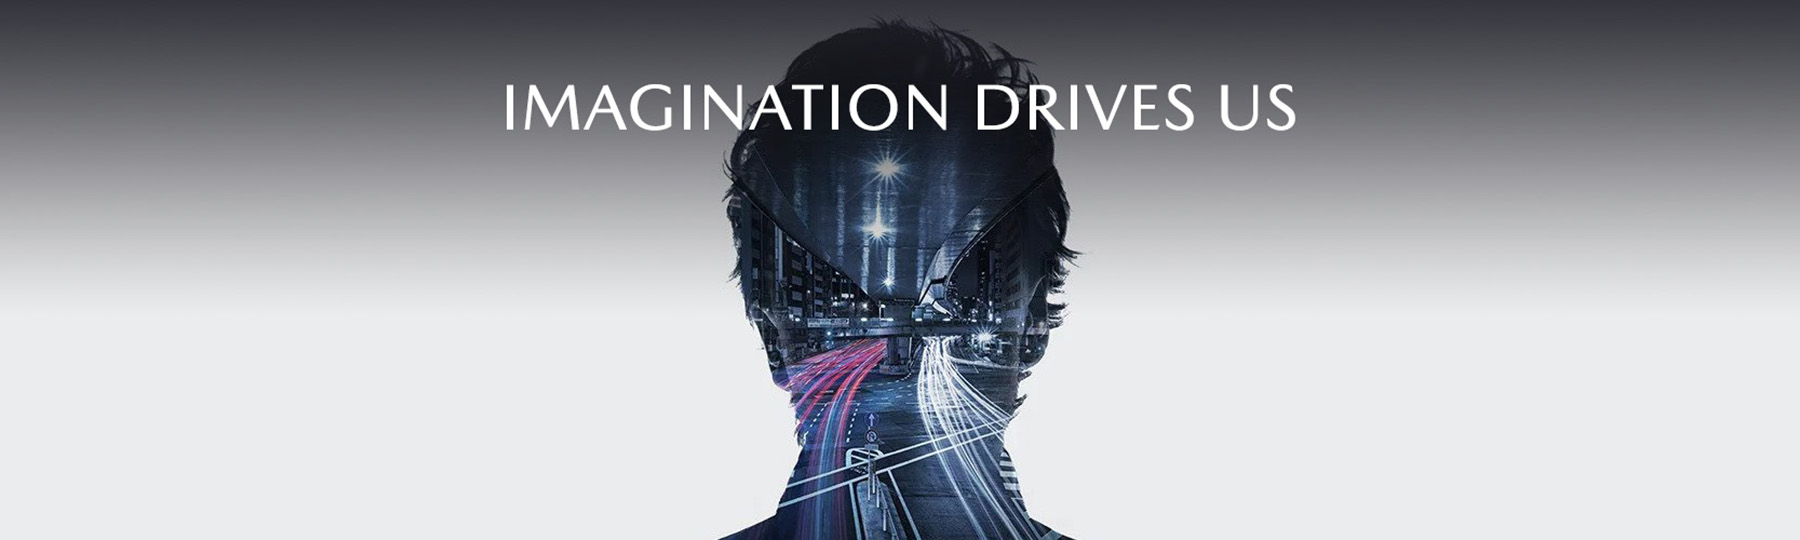 Mazda Imagination Drives Us